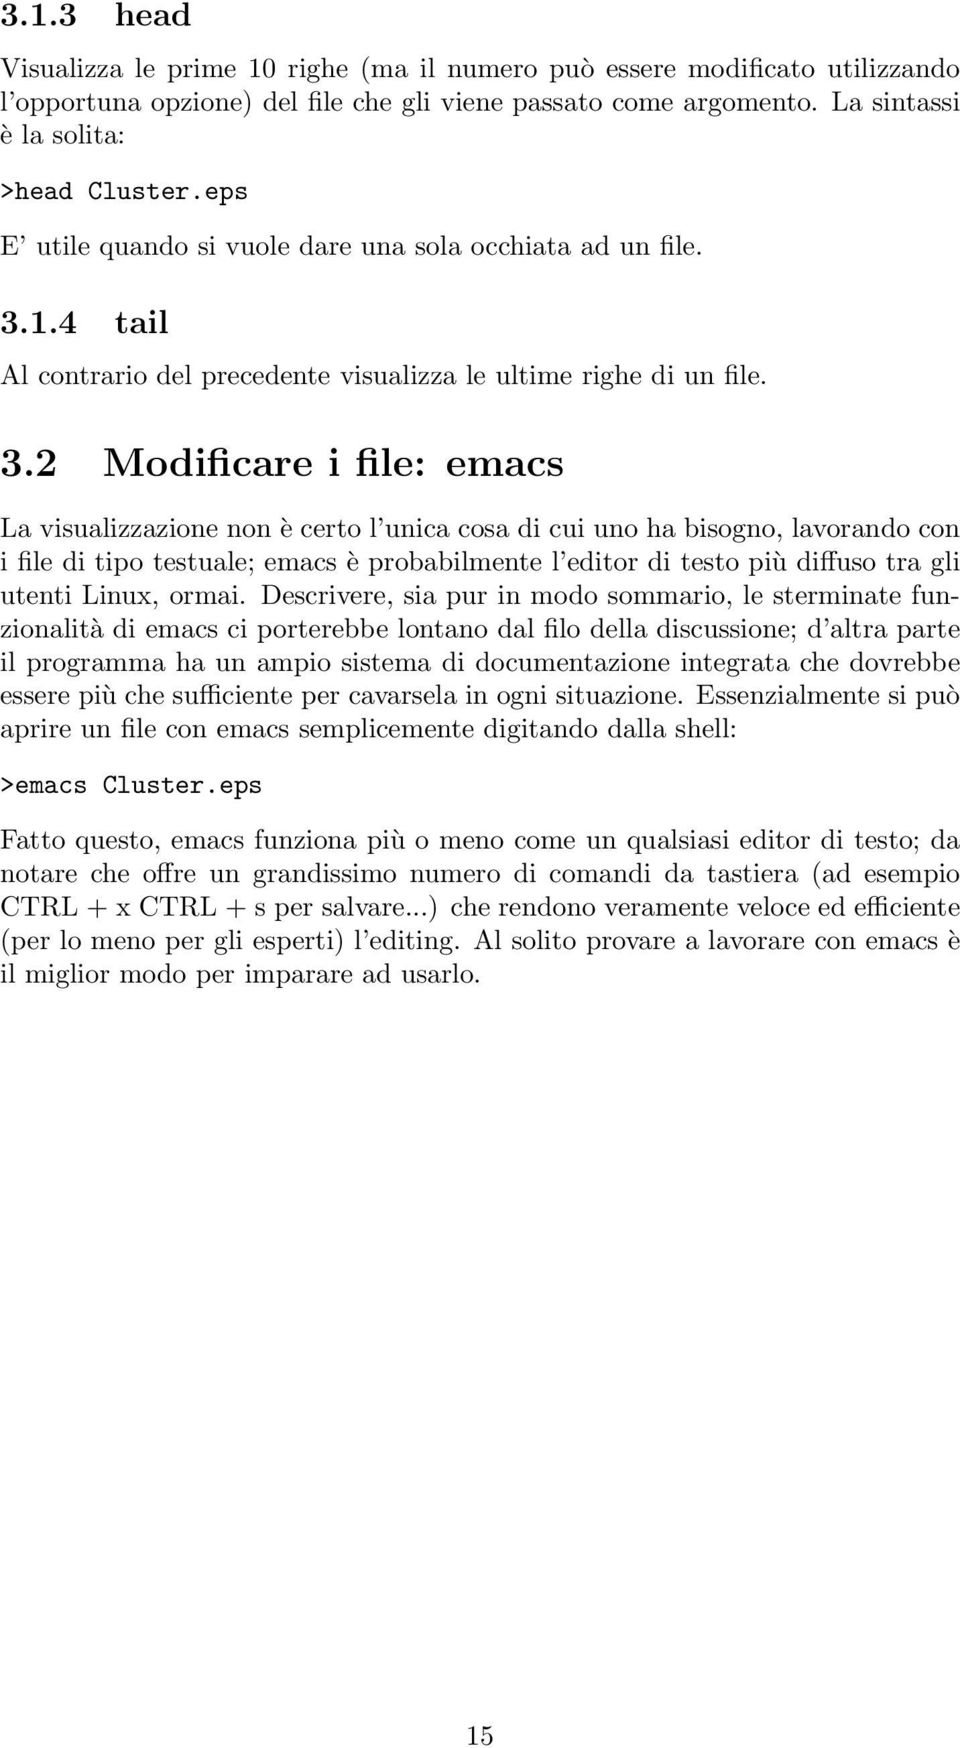 1.4 tail Al contrario del precedente visualizza le ultime righe di un file. 3.